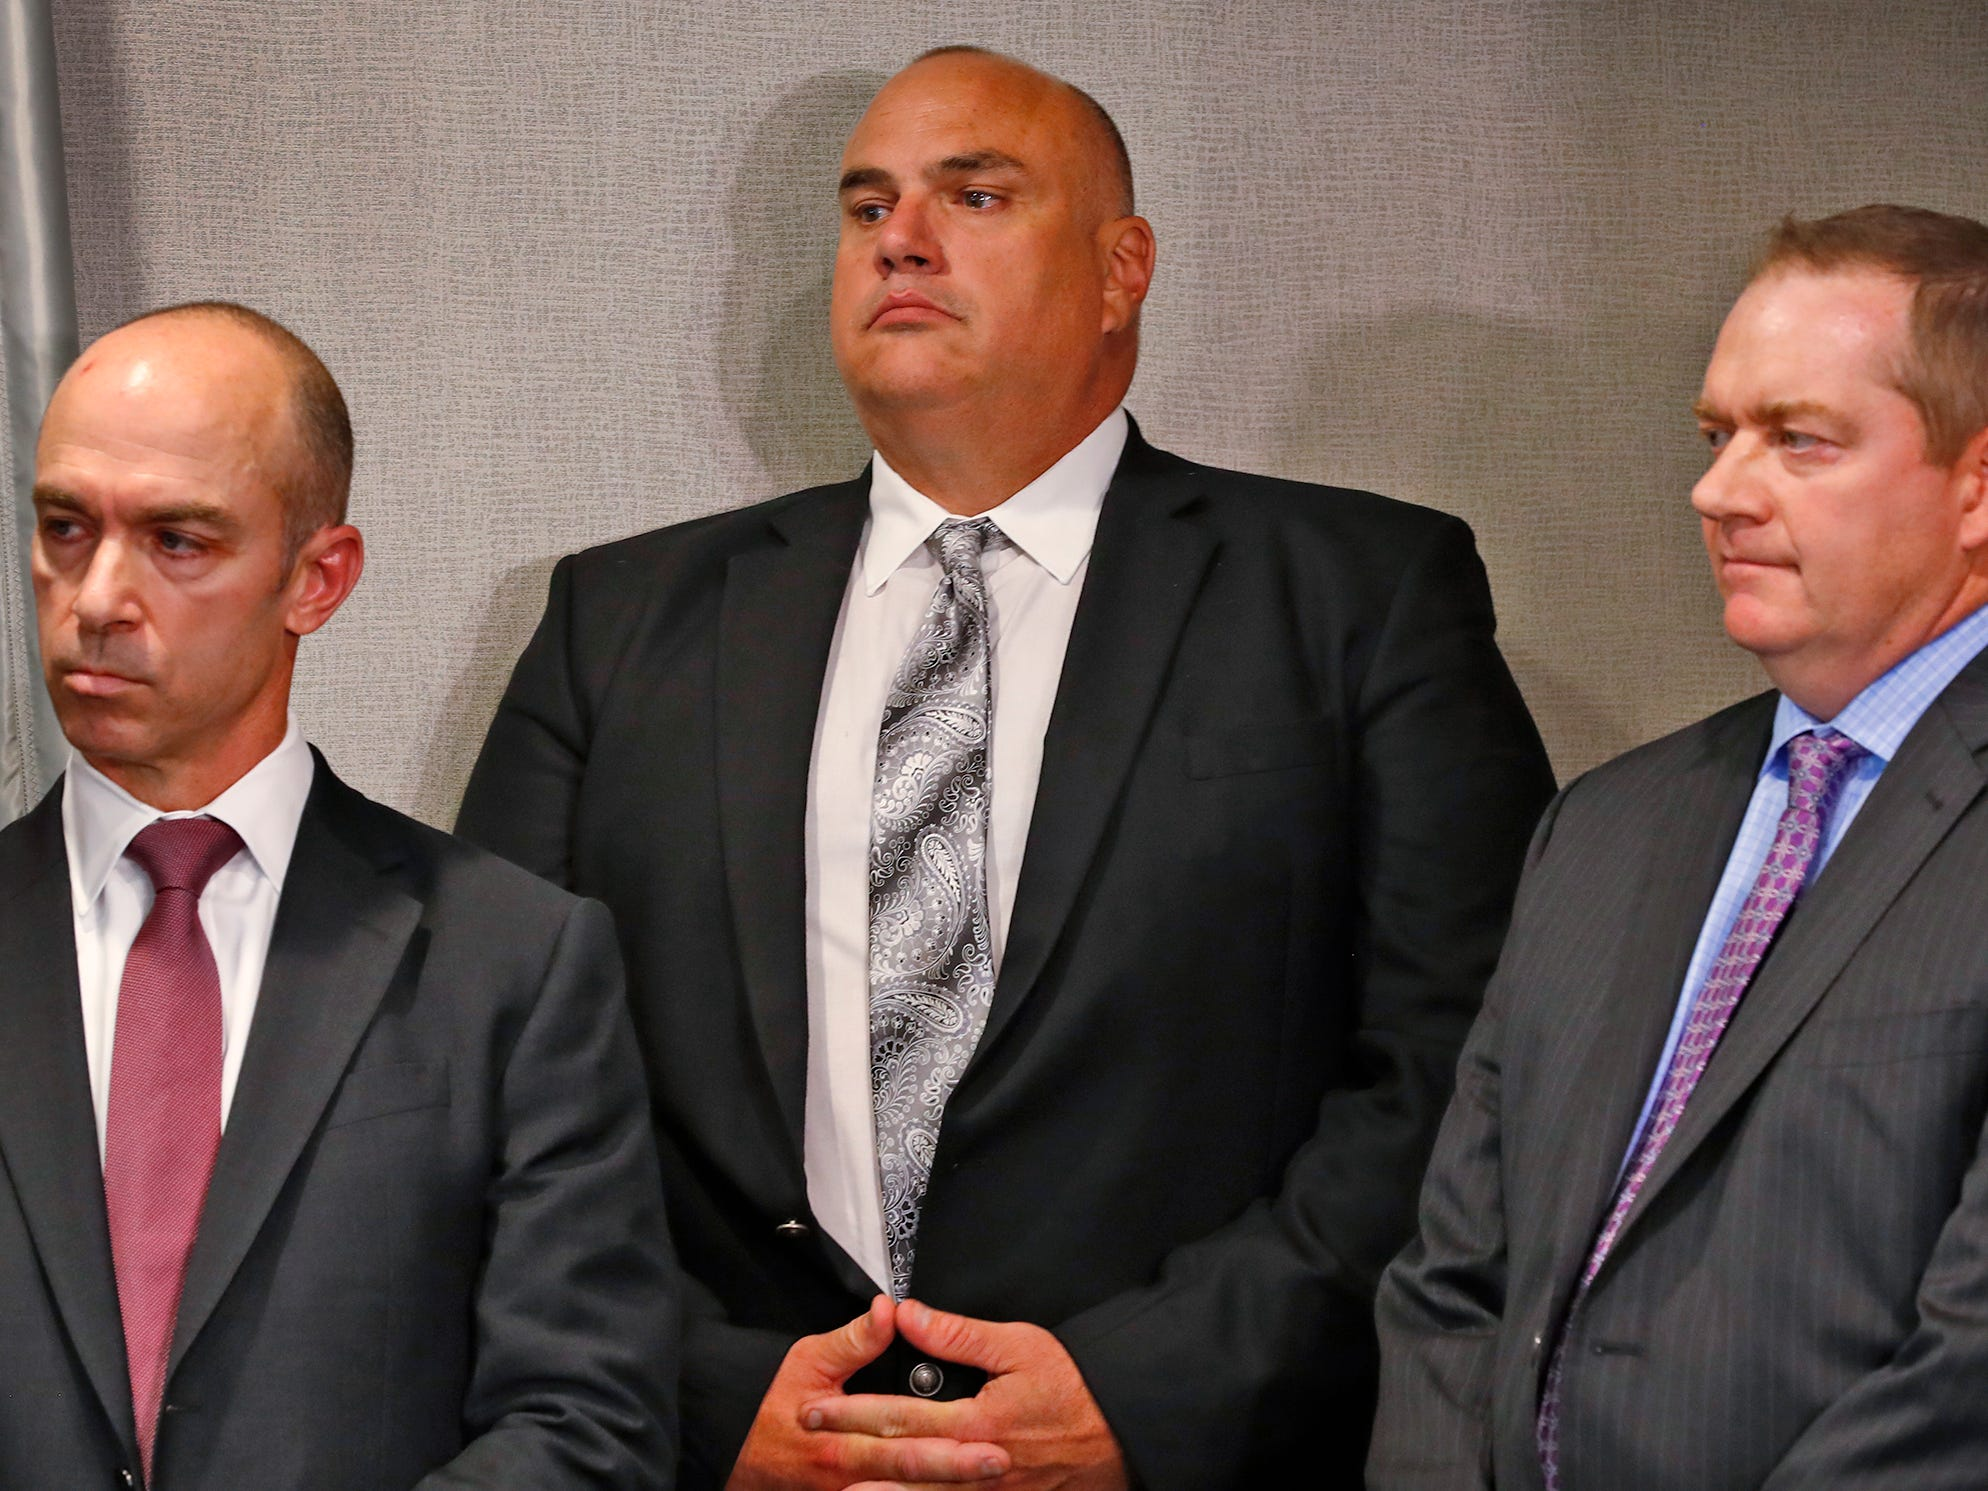 "FBI Special Agent in Charge Grant Mendenhall, from left, Indiana State Board of Accounts State Examiner Paul Joyce, and Deputy Executive Director of the Indiana Prosecuting Attorney's Council Chris Naylor listen during a press conference at the U.S. Attorney's office, Thursday, Oct. 11, 2018.  U.S. Attorney Minkler, the FBI, Indiana State Police, and the State Board of Accounts release details about joint operation in a crackdown involving ""state-wide corruption,"" from Operation Public Accountability."